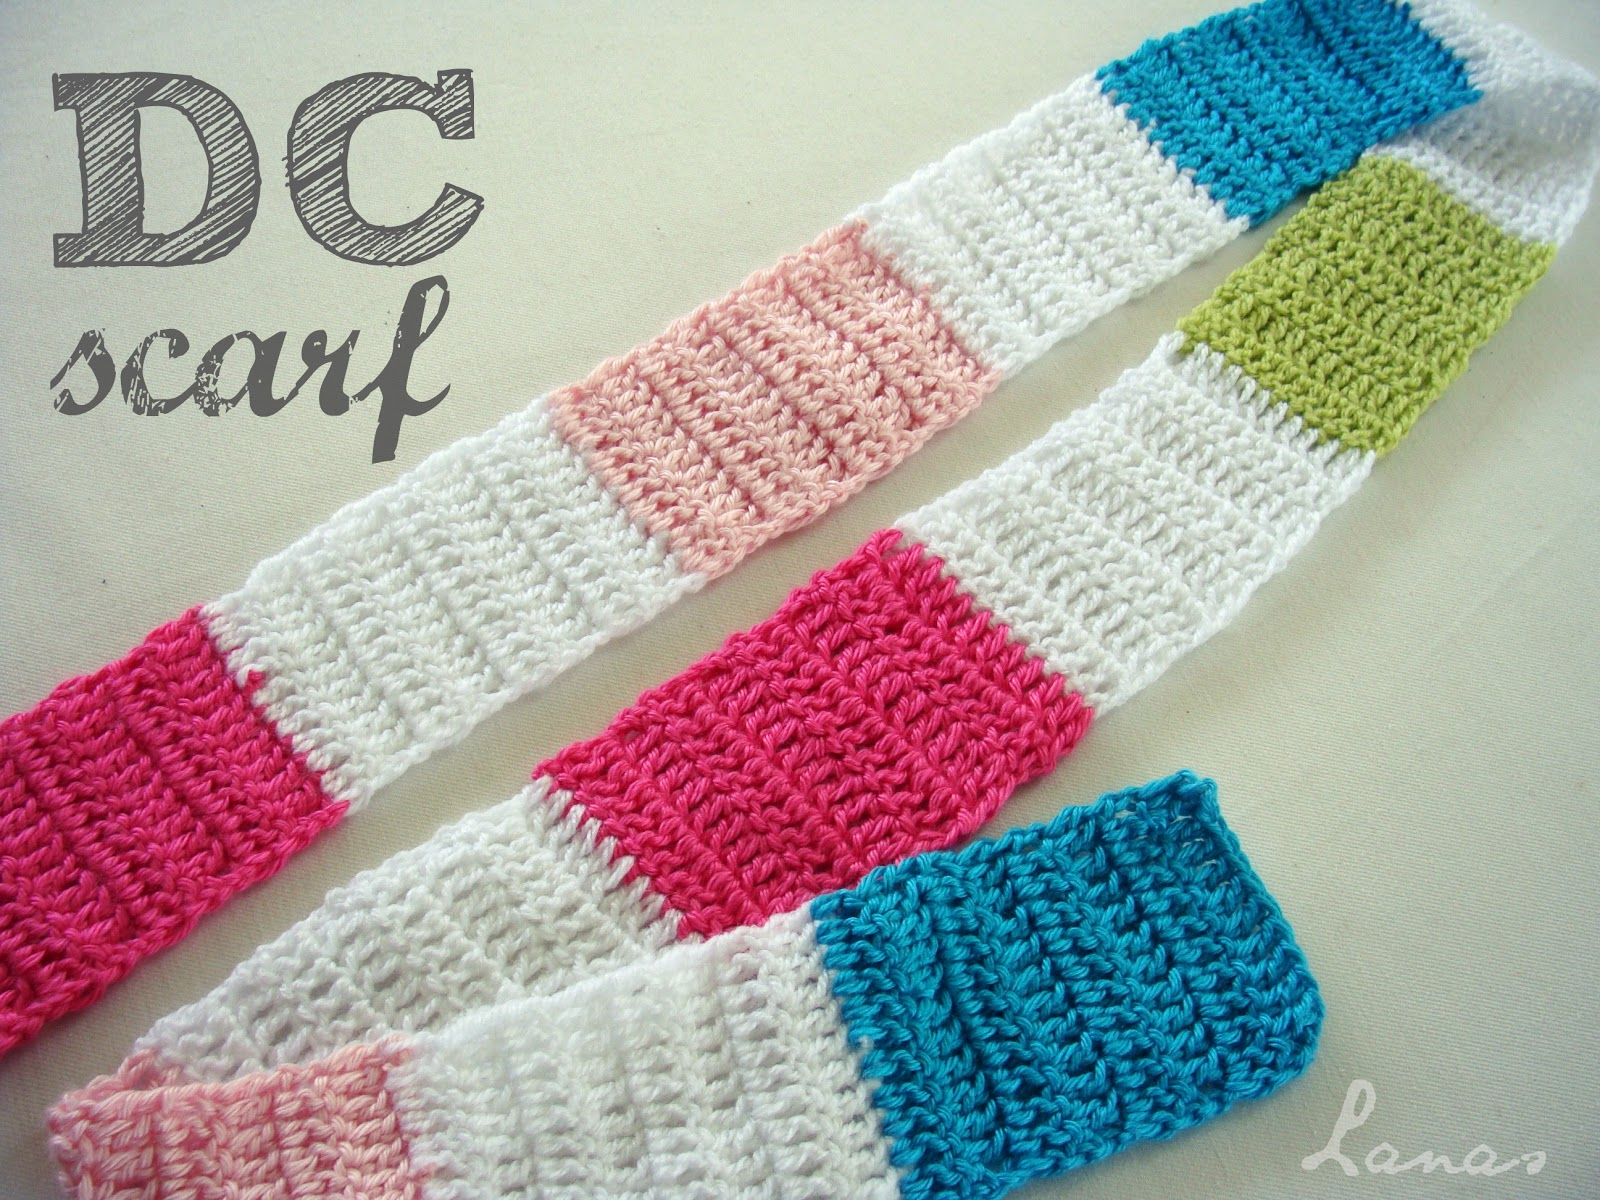 How to Crochet: Front Loop Only (FLO) and Back Loop Only (BLO ... | 1200x1600